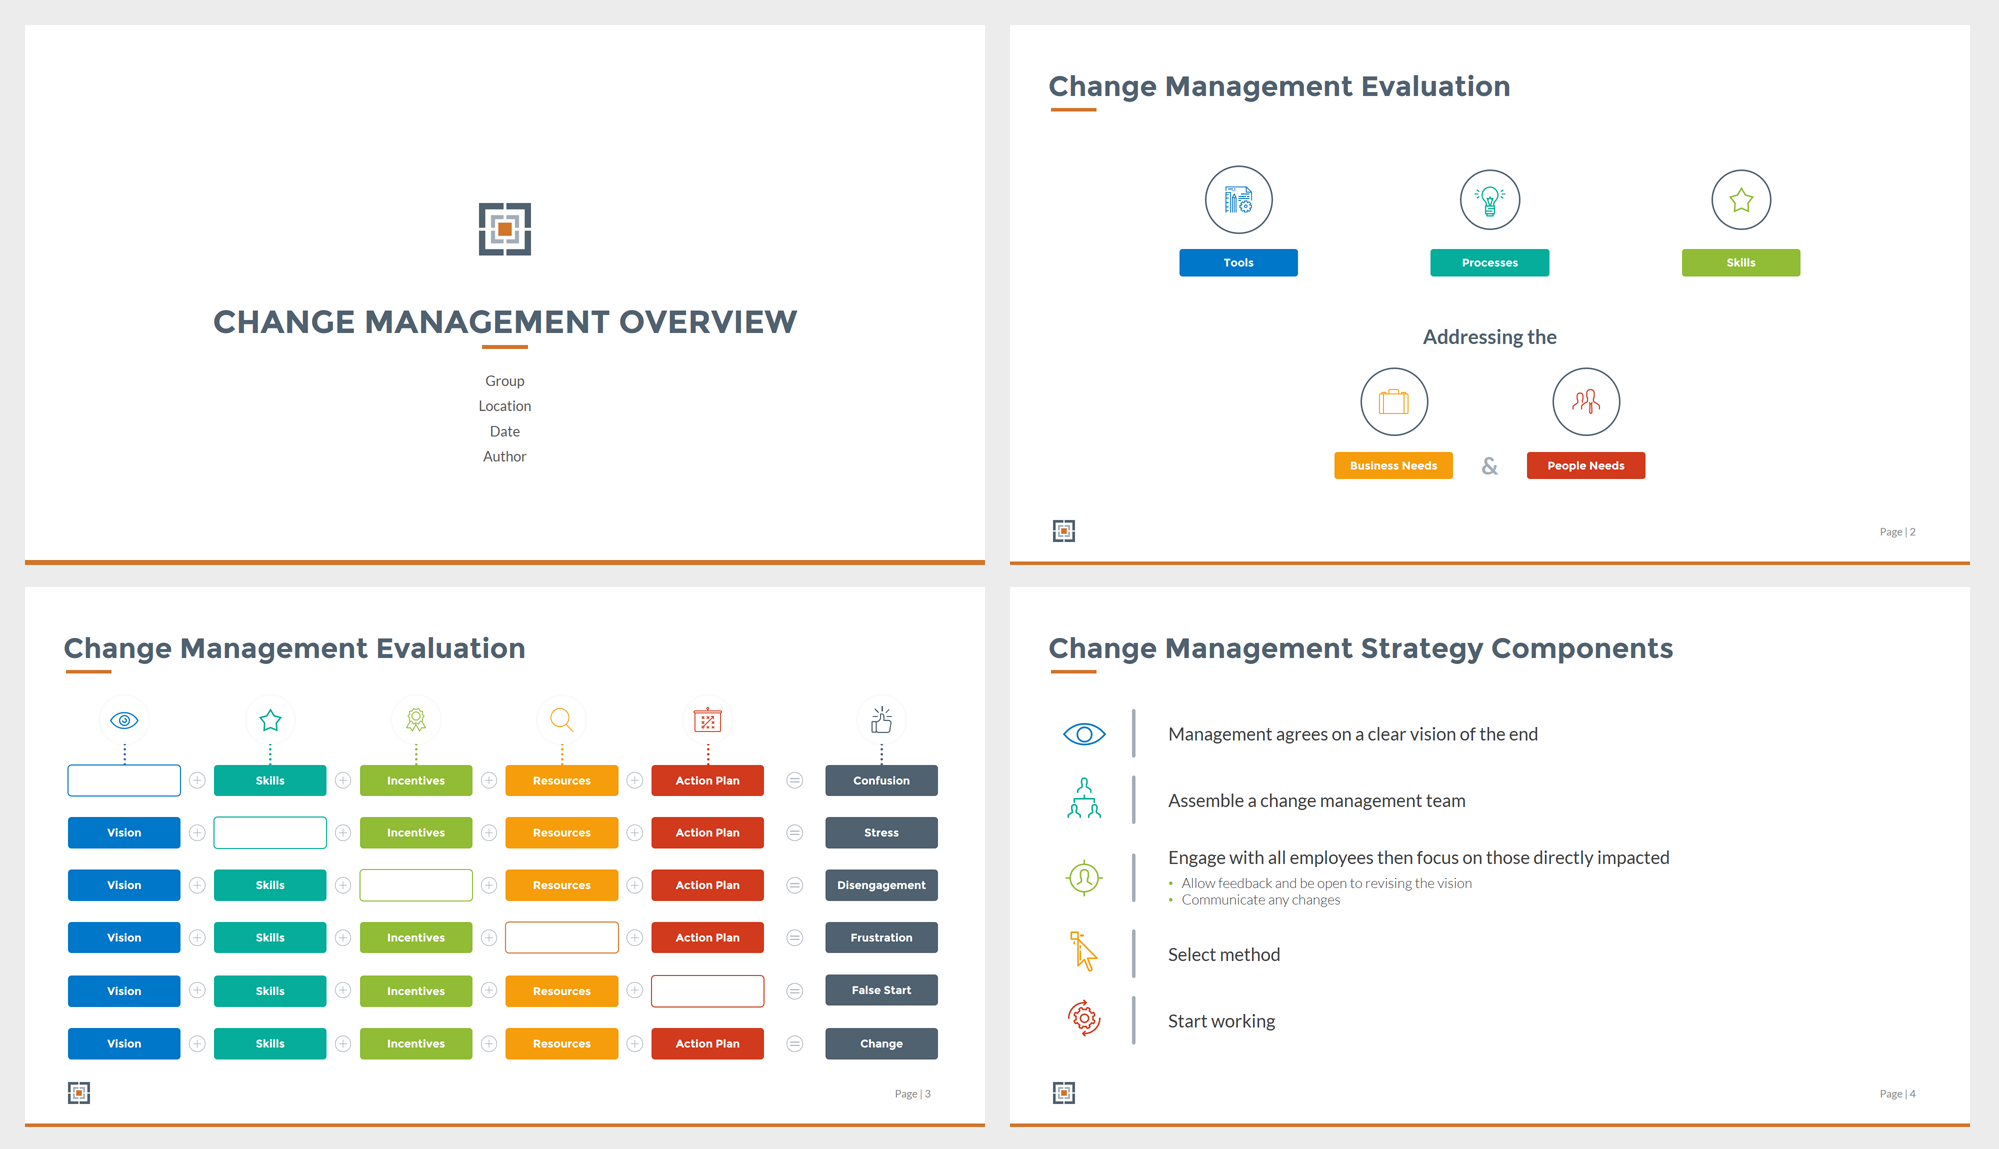 Change management overview